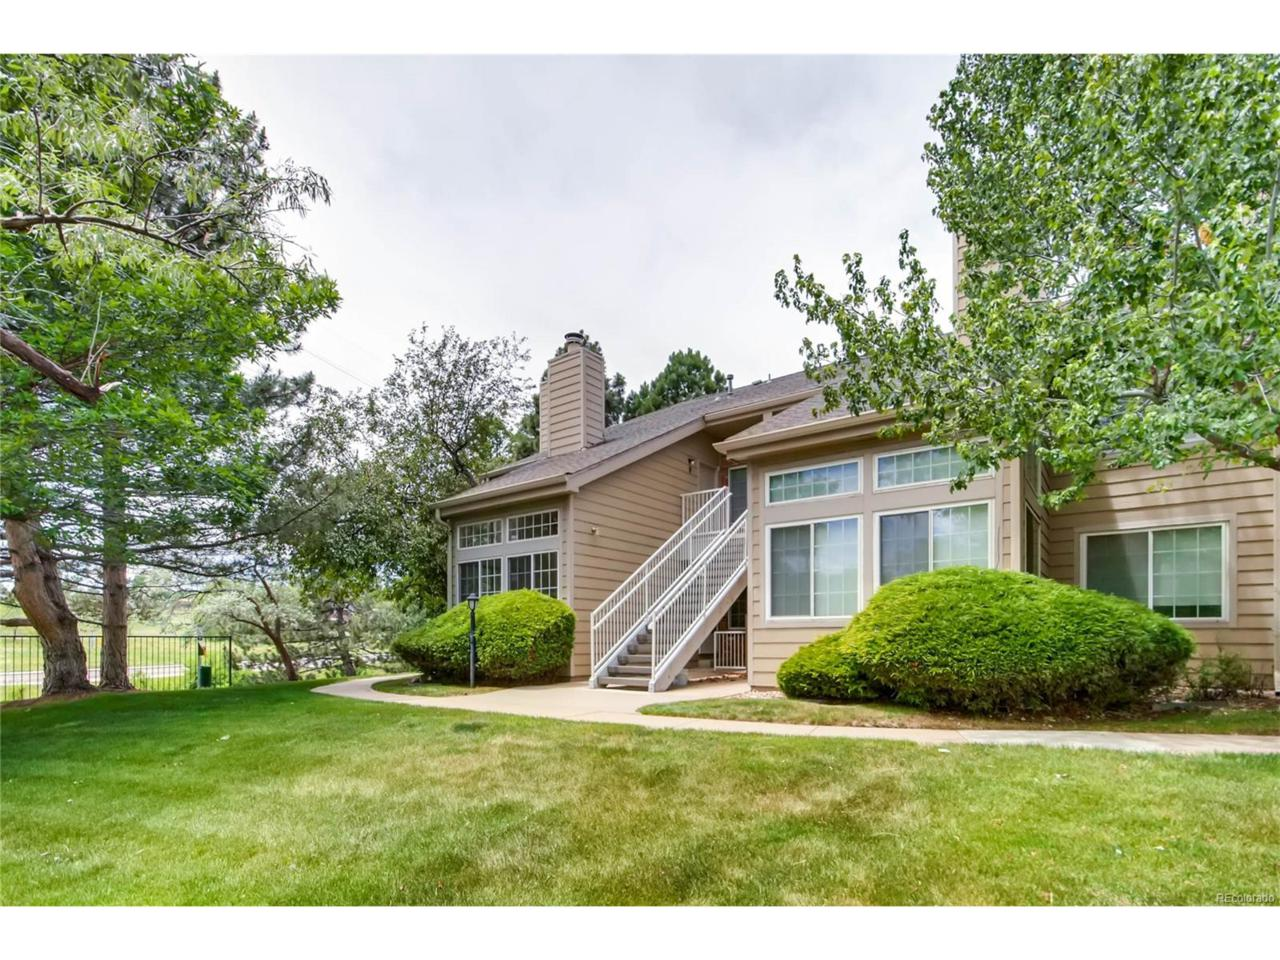 882 S Reed Court E, Lakewood, CO 80226 (MLS #7872455) :: 8z Real Estate